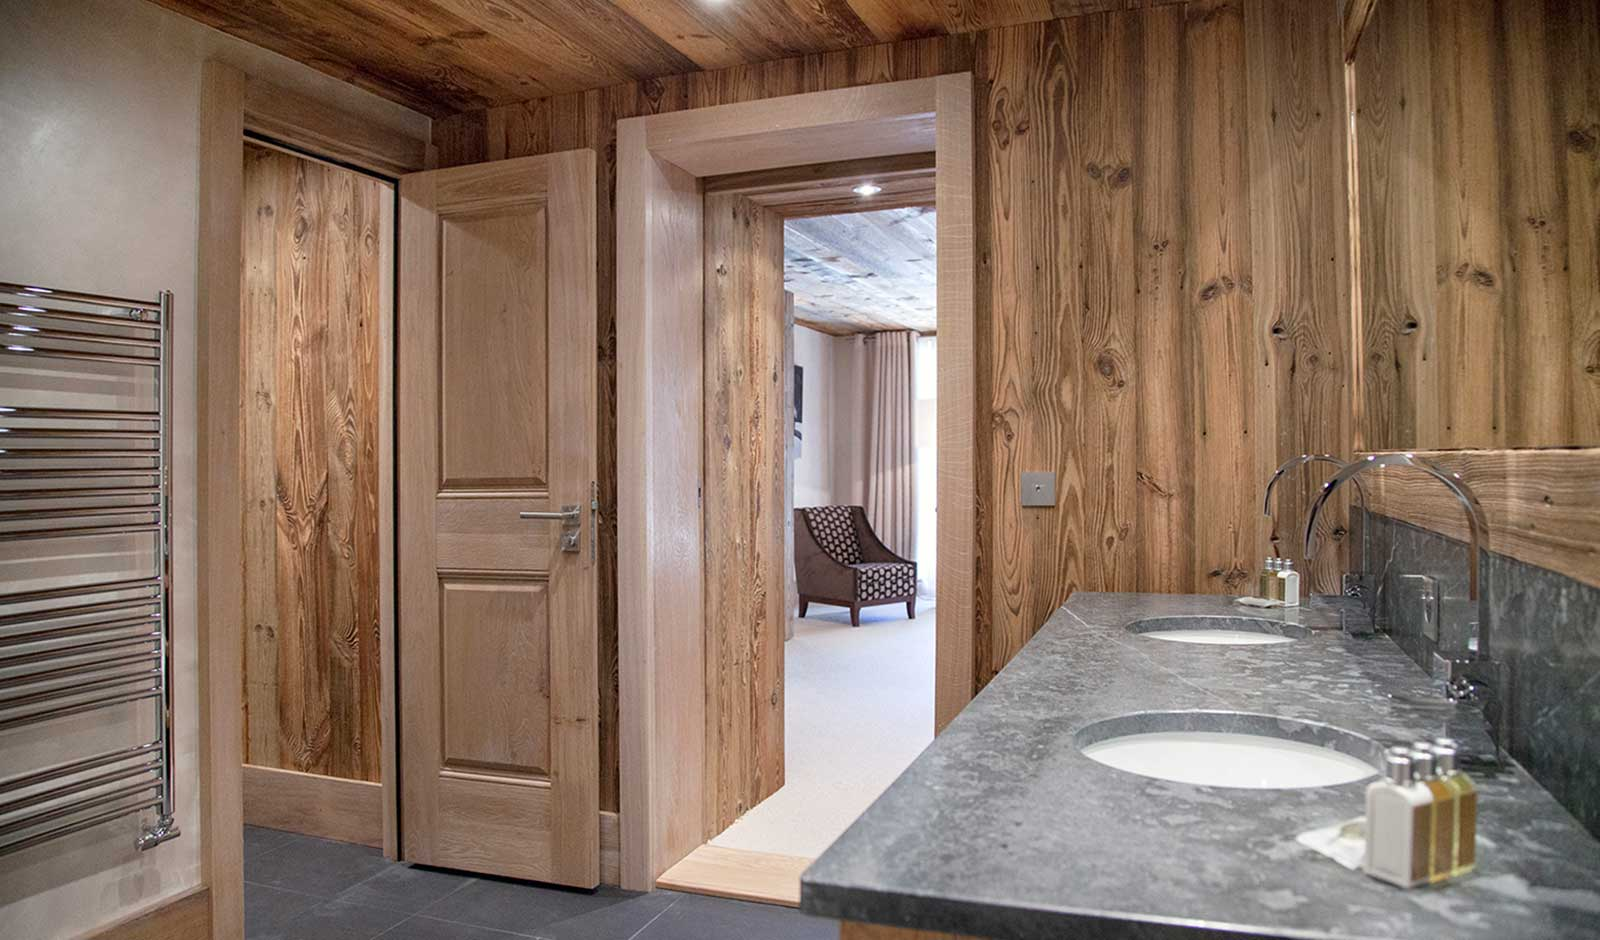 chalet-mont-tremblant-3-atelier-crea-and-co-architecte-design-project-manager-meribel-savoie